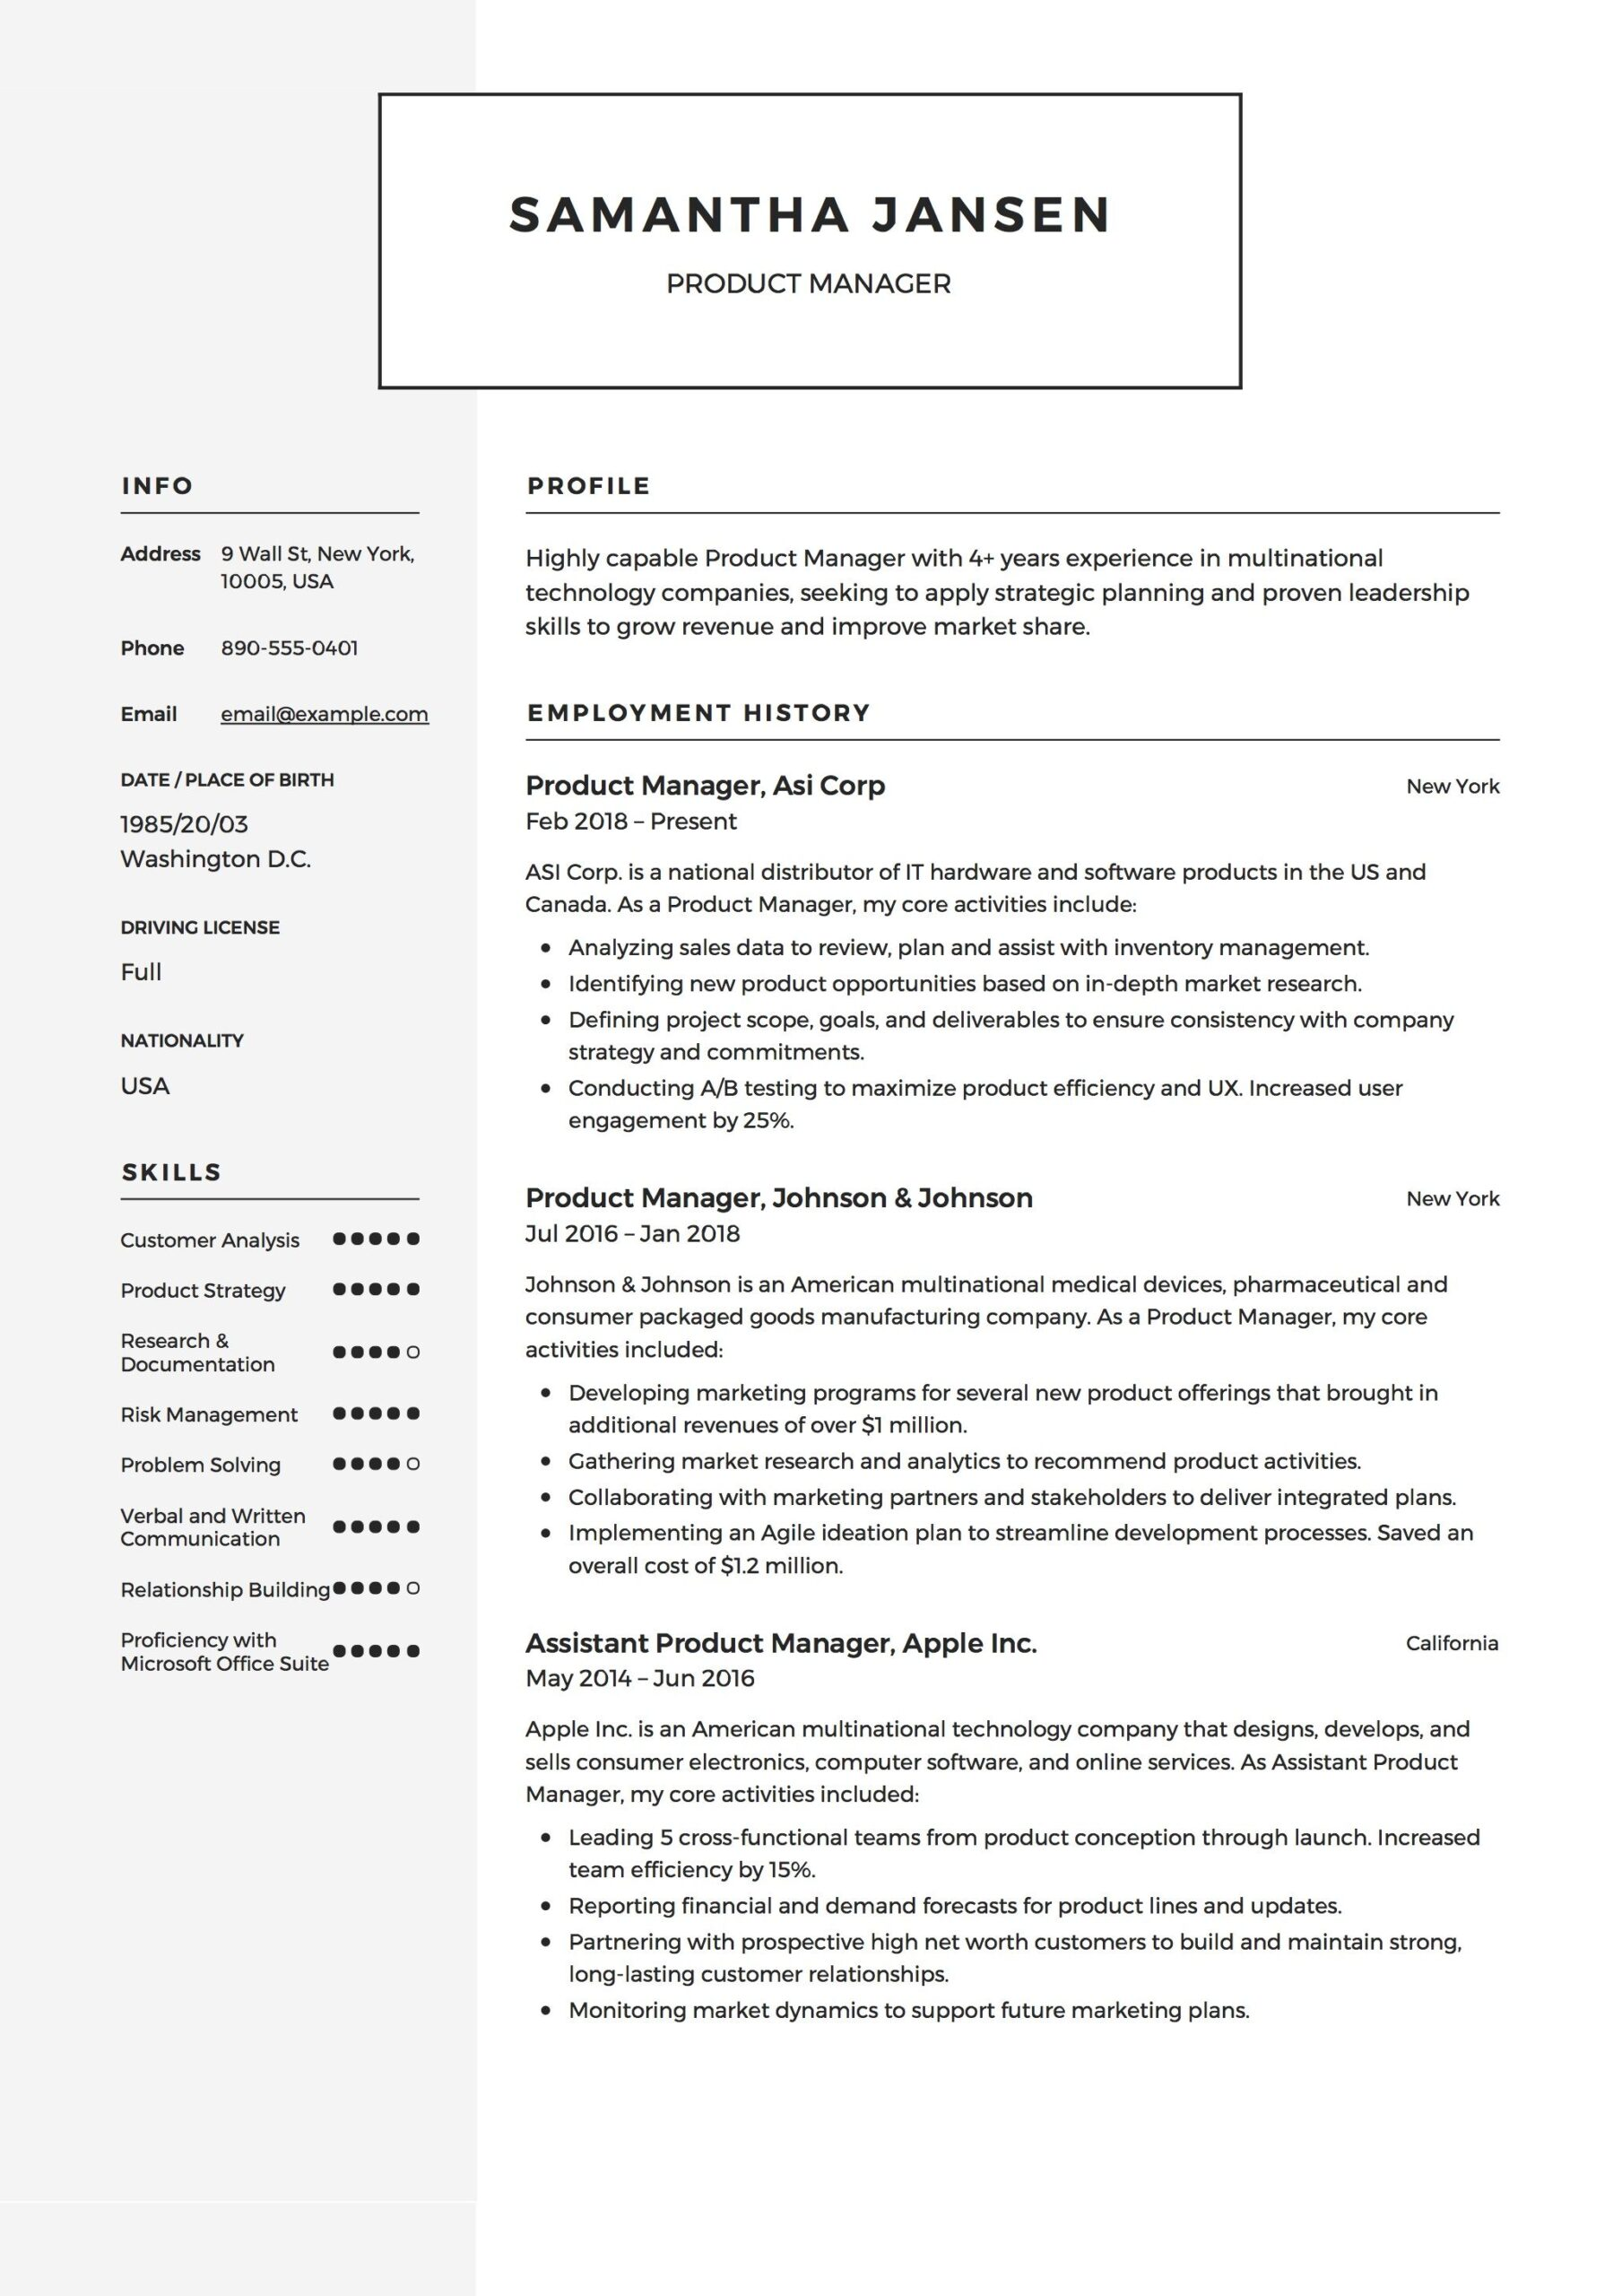 product manager resume sample template example cv formal design examples guide legal Resume Product Manager Resume Template